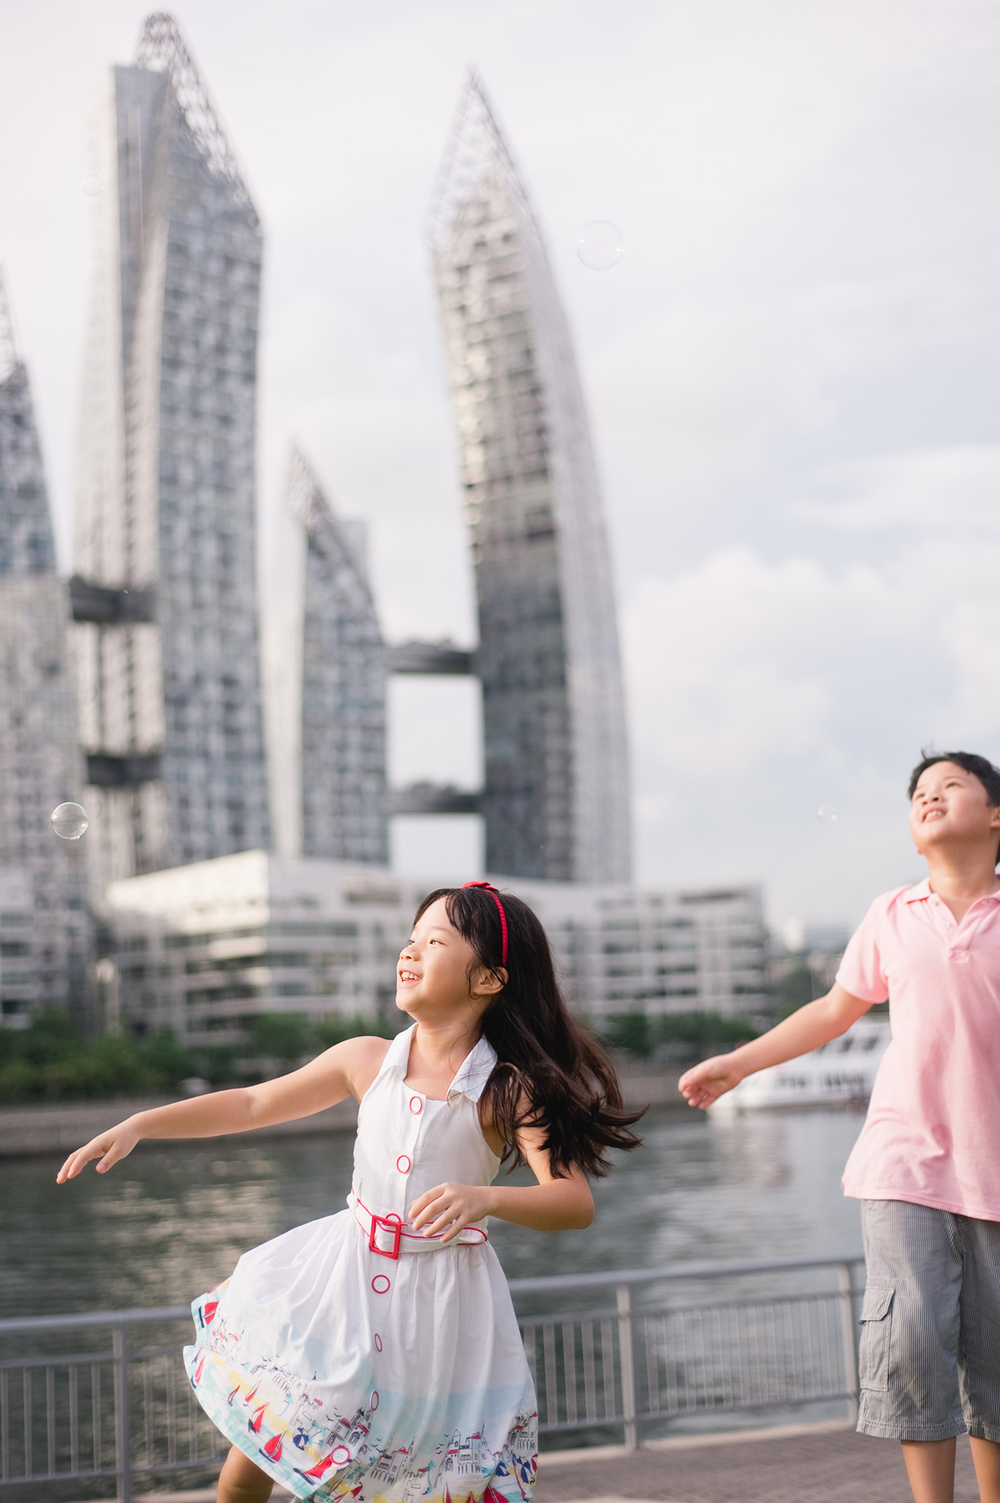 Flytographer Vacation Photographer in Singapore - KC